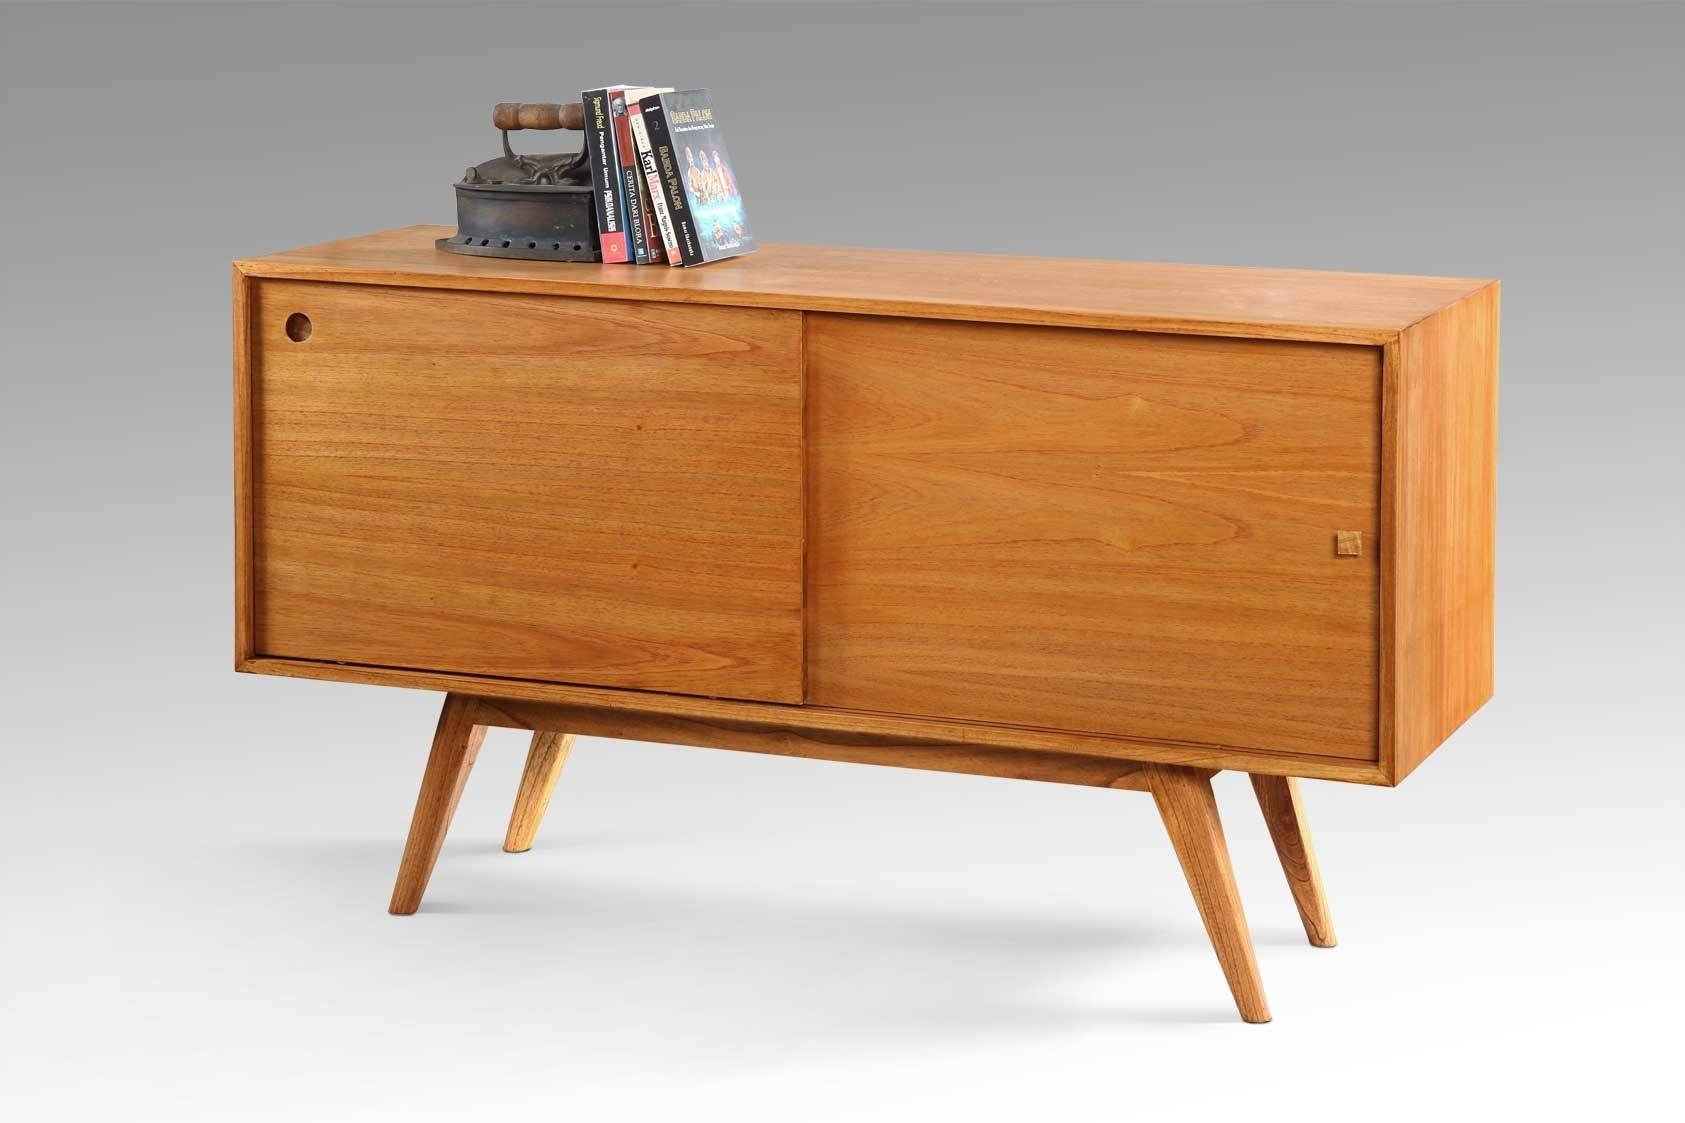 Pasion For Retro - Mia Casa - Dress Up Your Home regarding Retro Sideboards (Image 15 of 30)